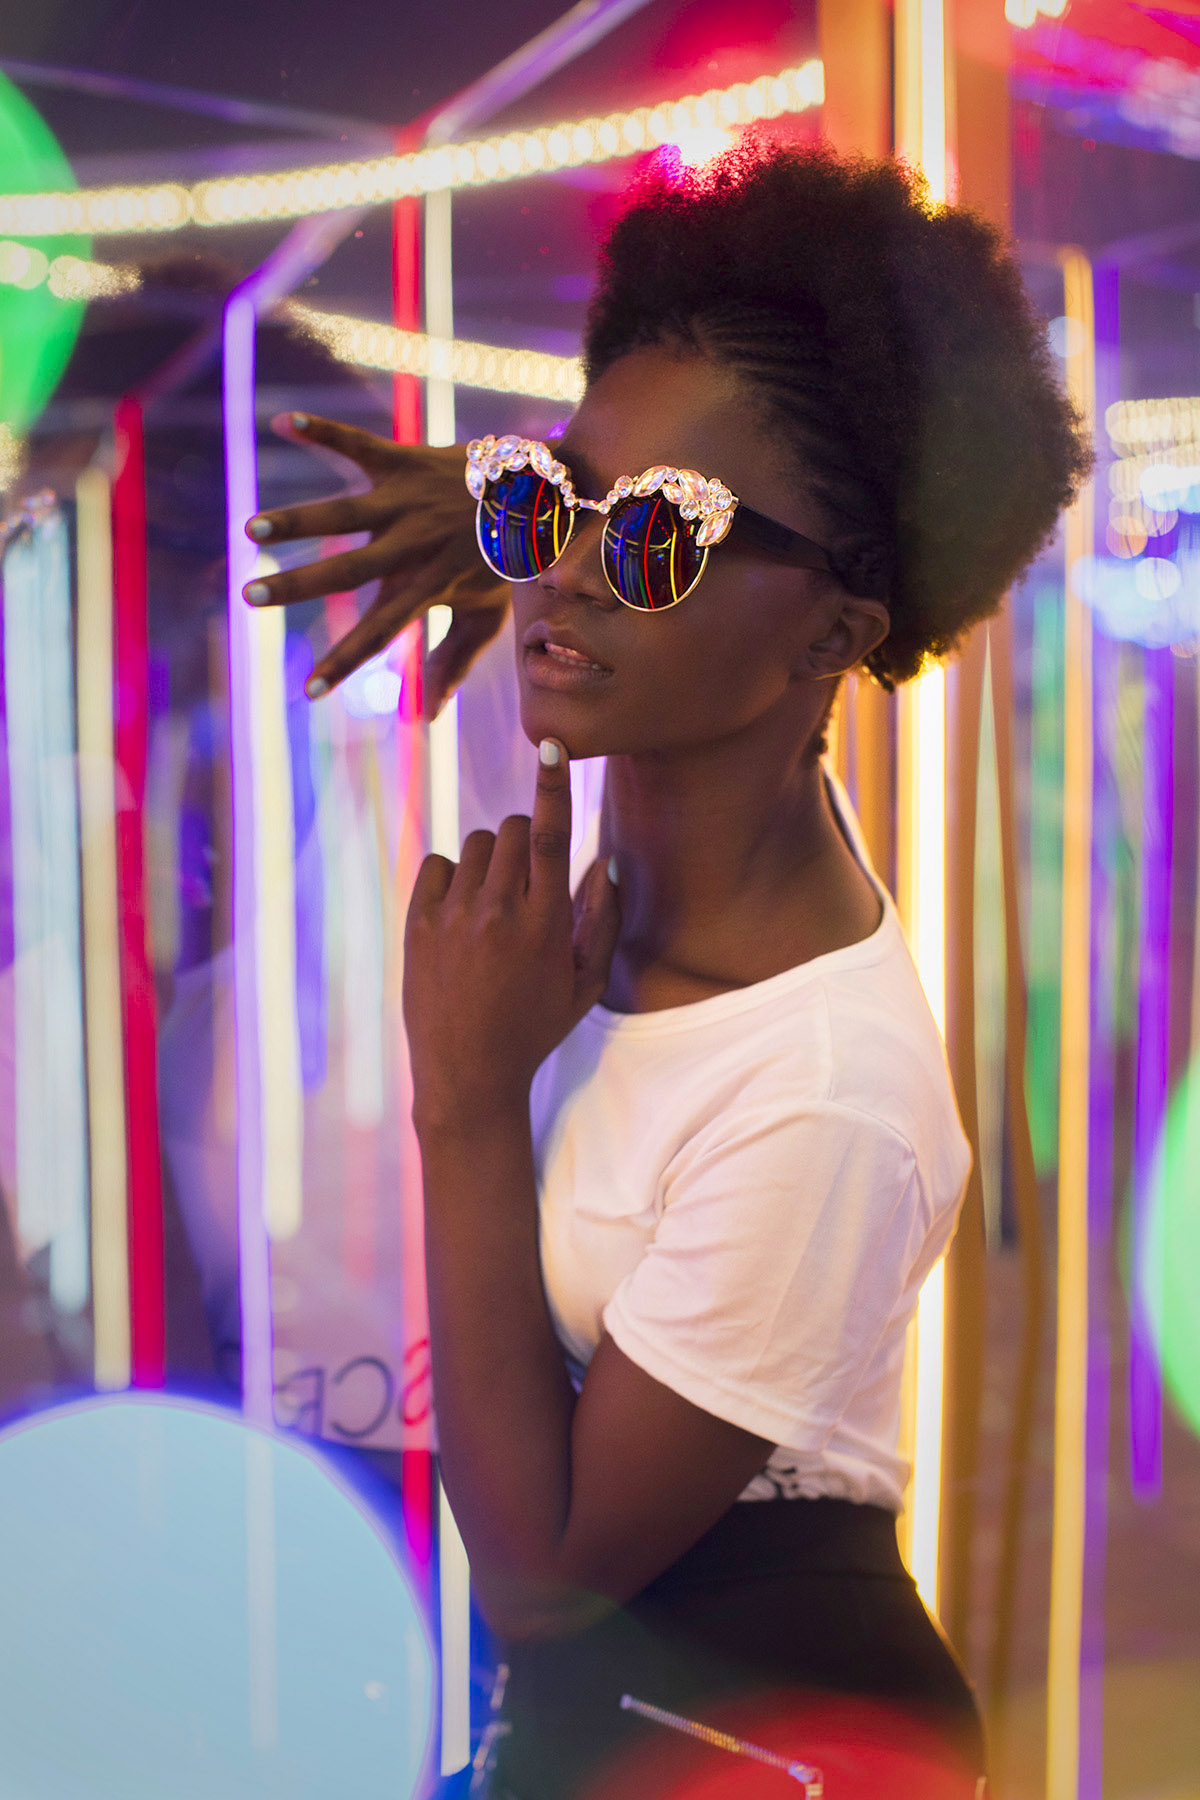 Neon fashion shoot by Loesje Kessels Fashion Photographer Dubai